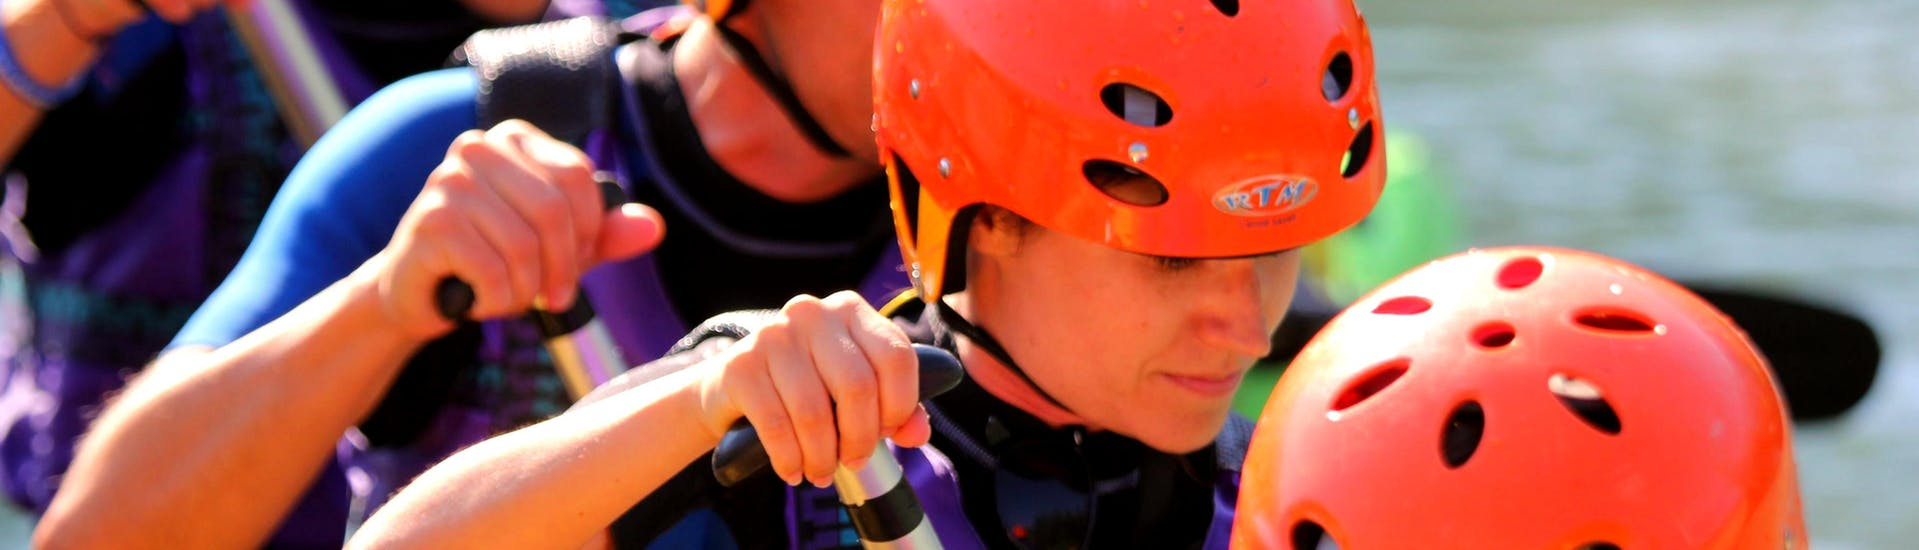 A group of people wearing orange helmets row during Rafting on the Adda - Full Fun of Rafting Lombardia.